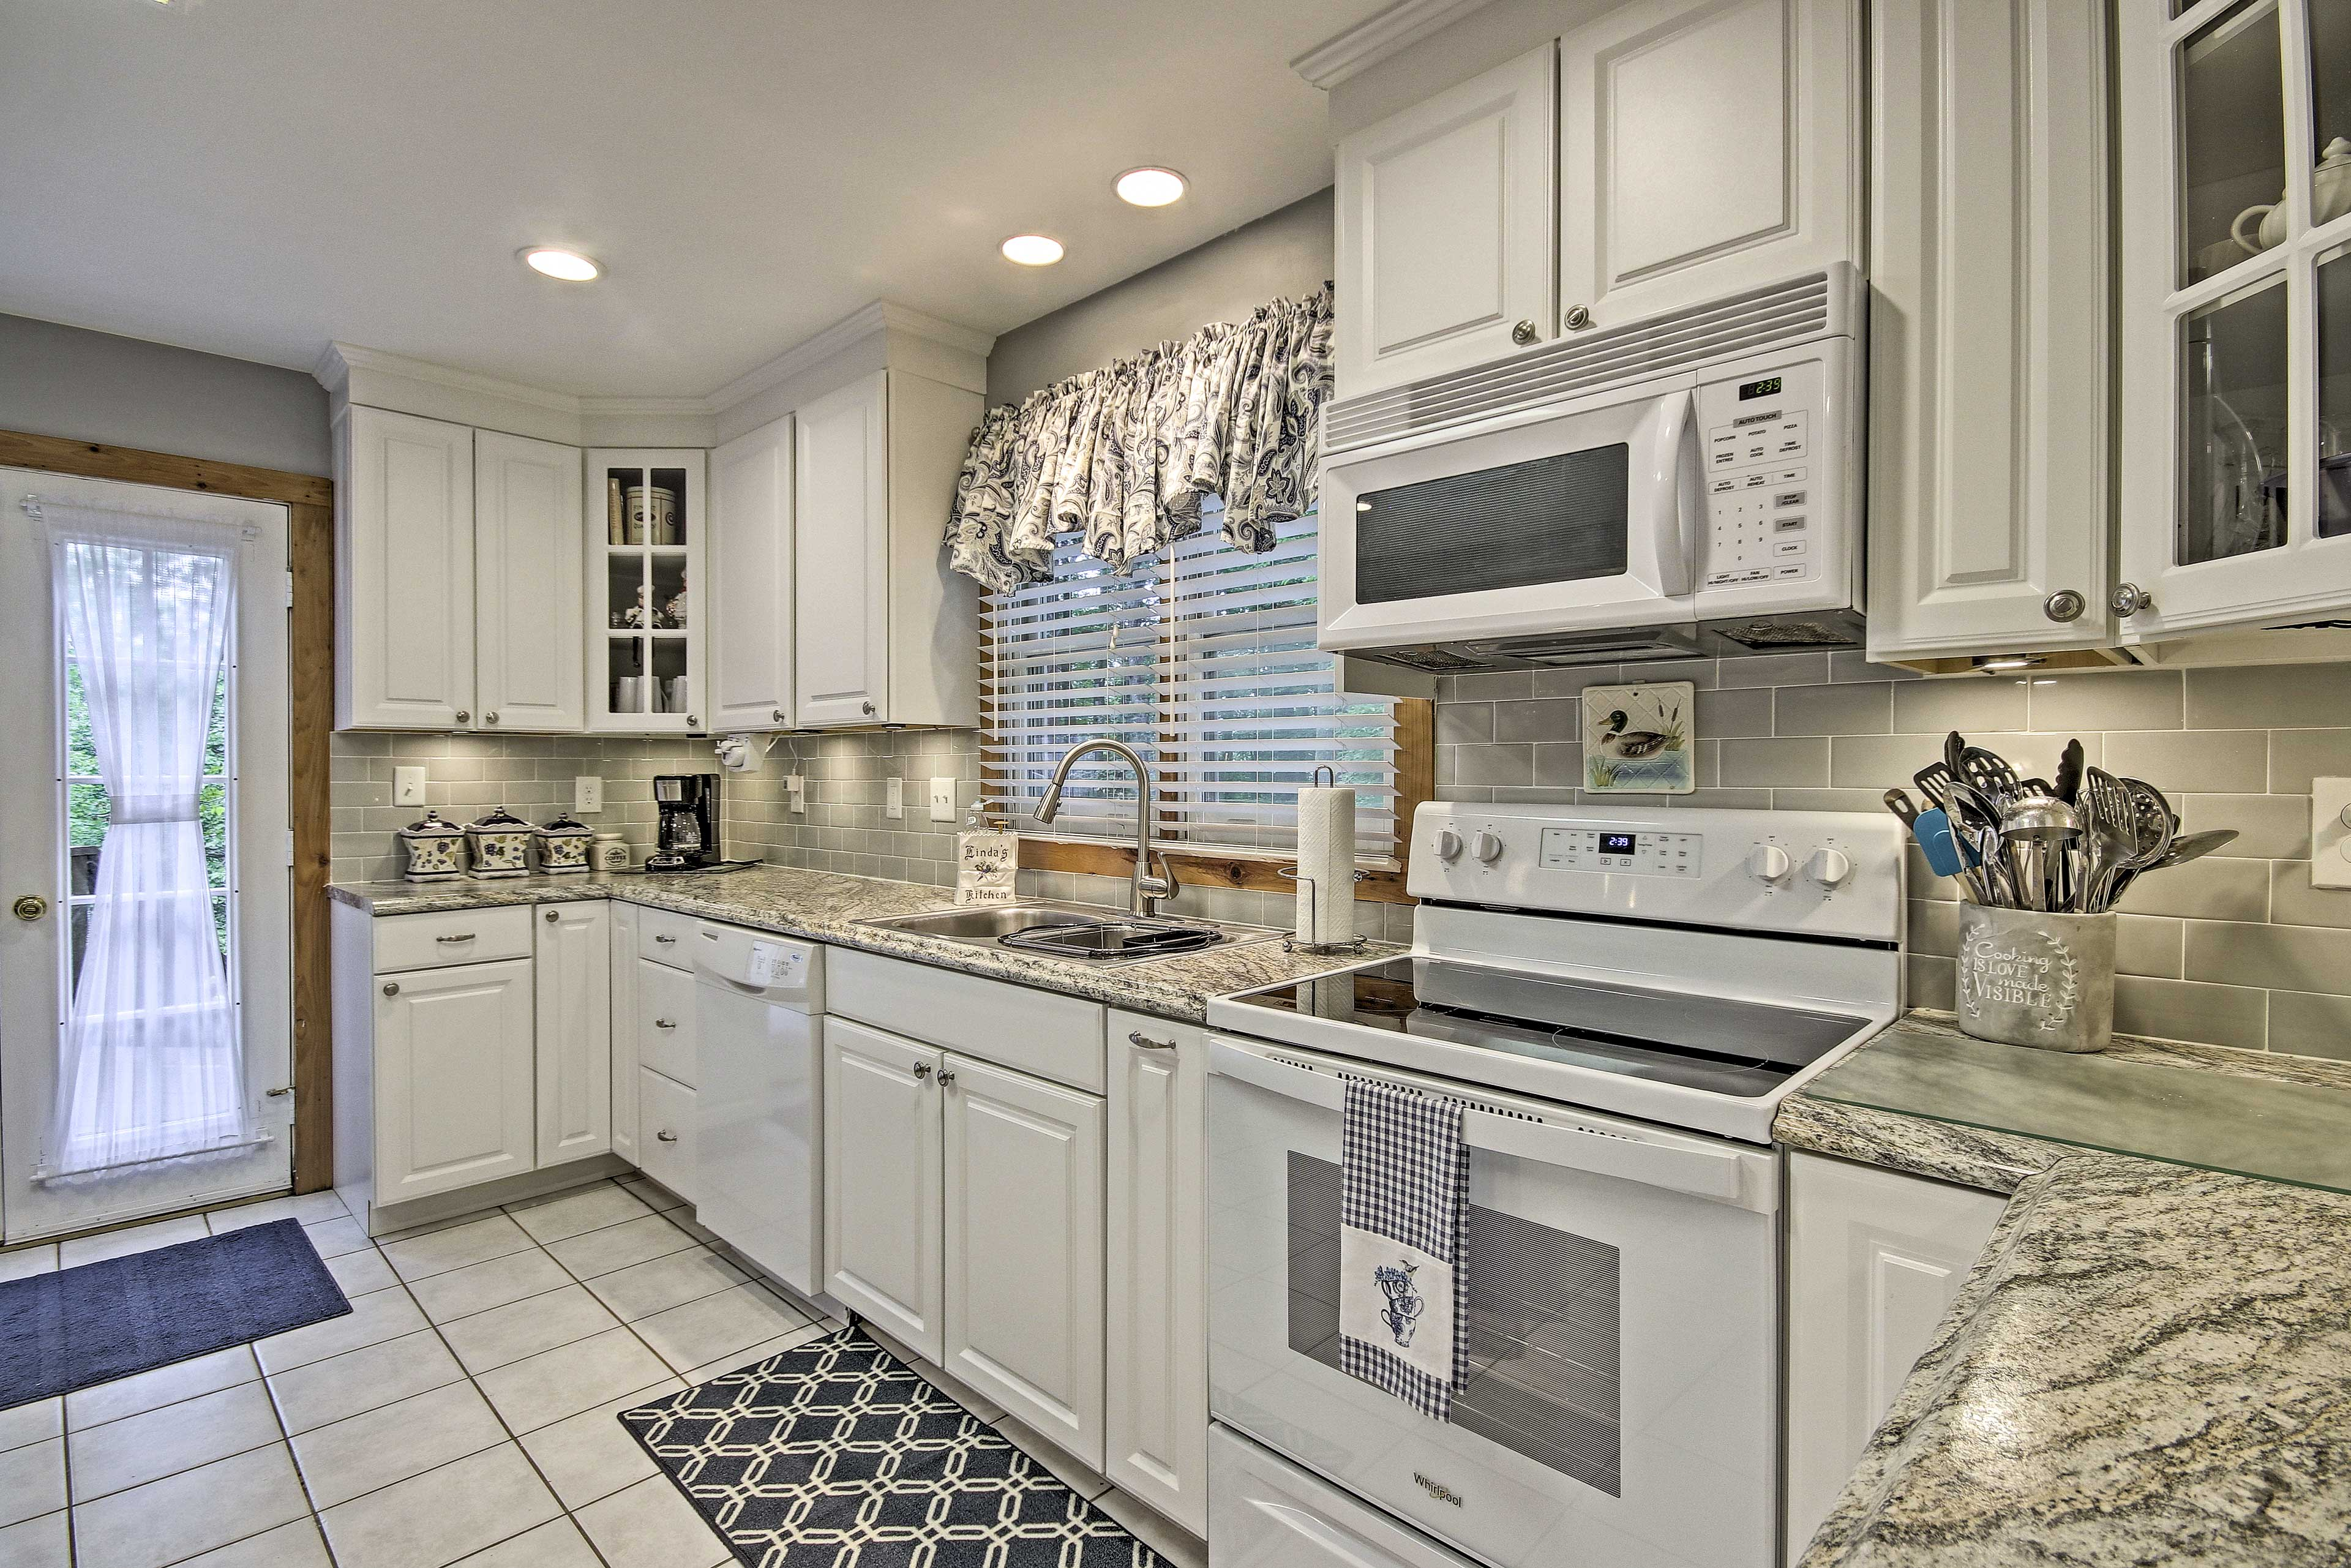 This fully loaded kitchen has everything you'll need to make a masterful meal.